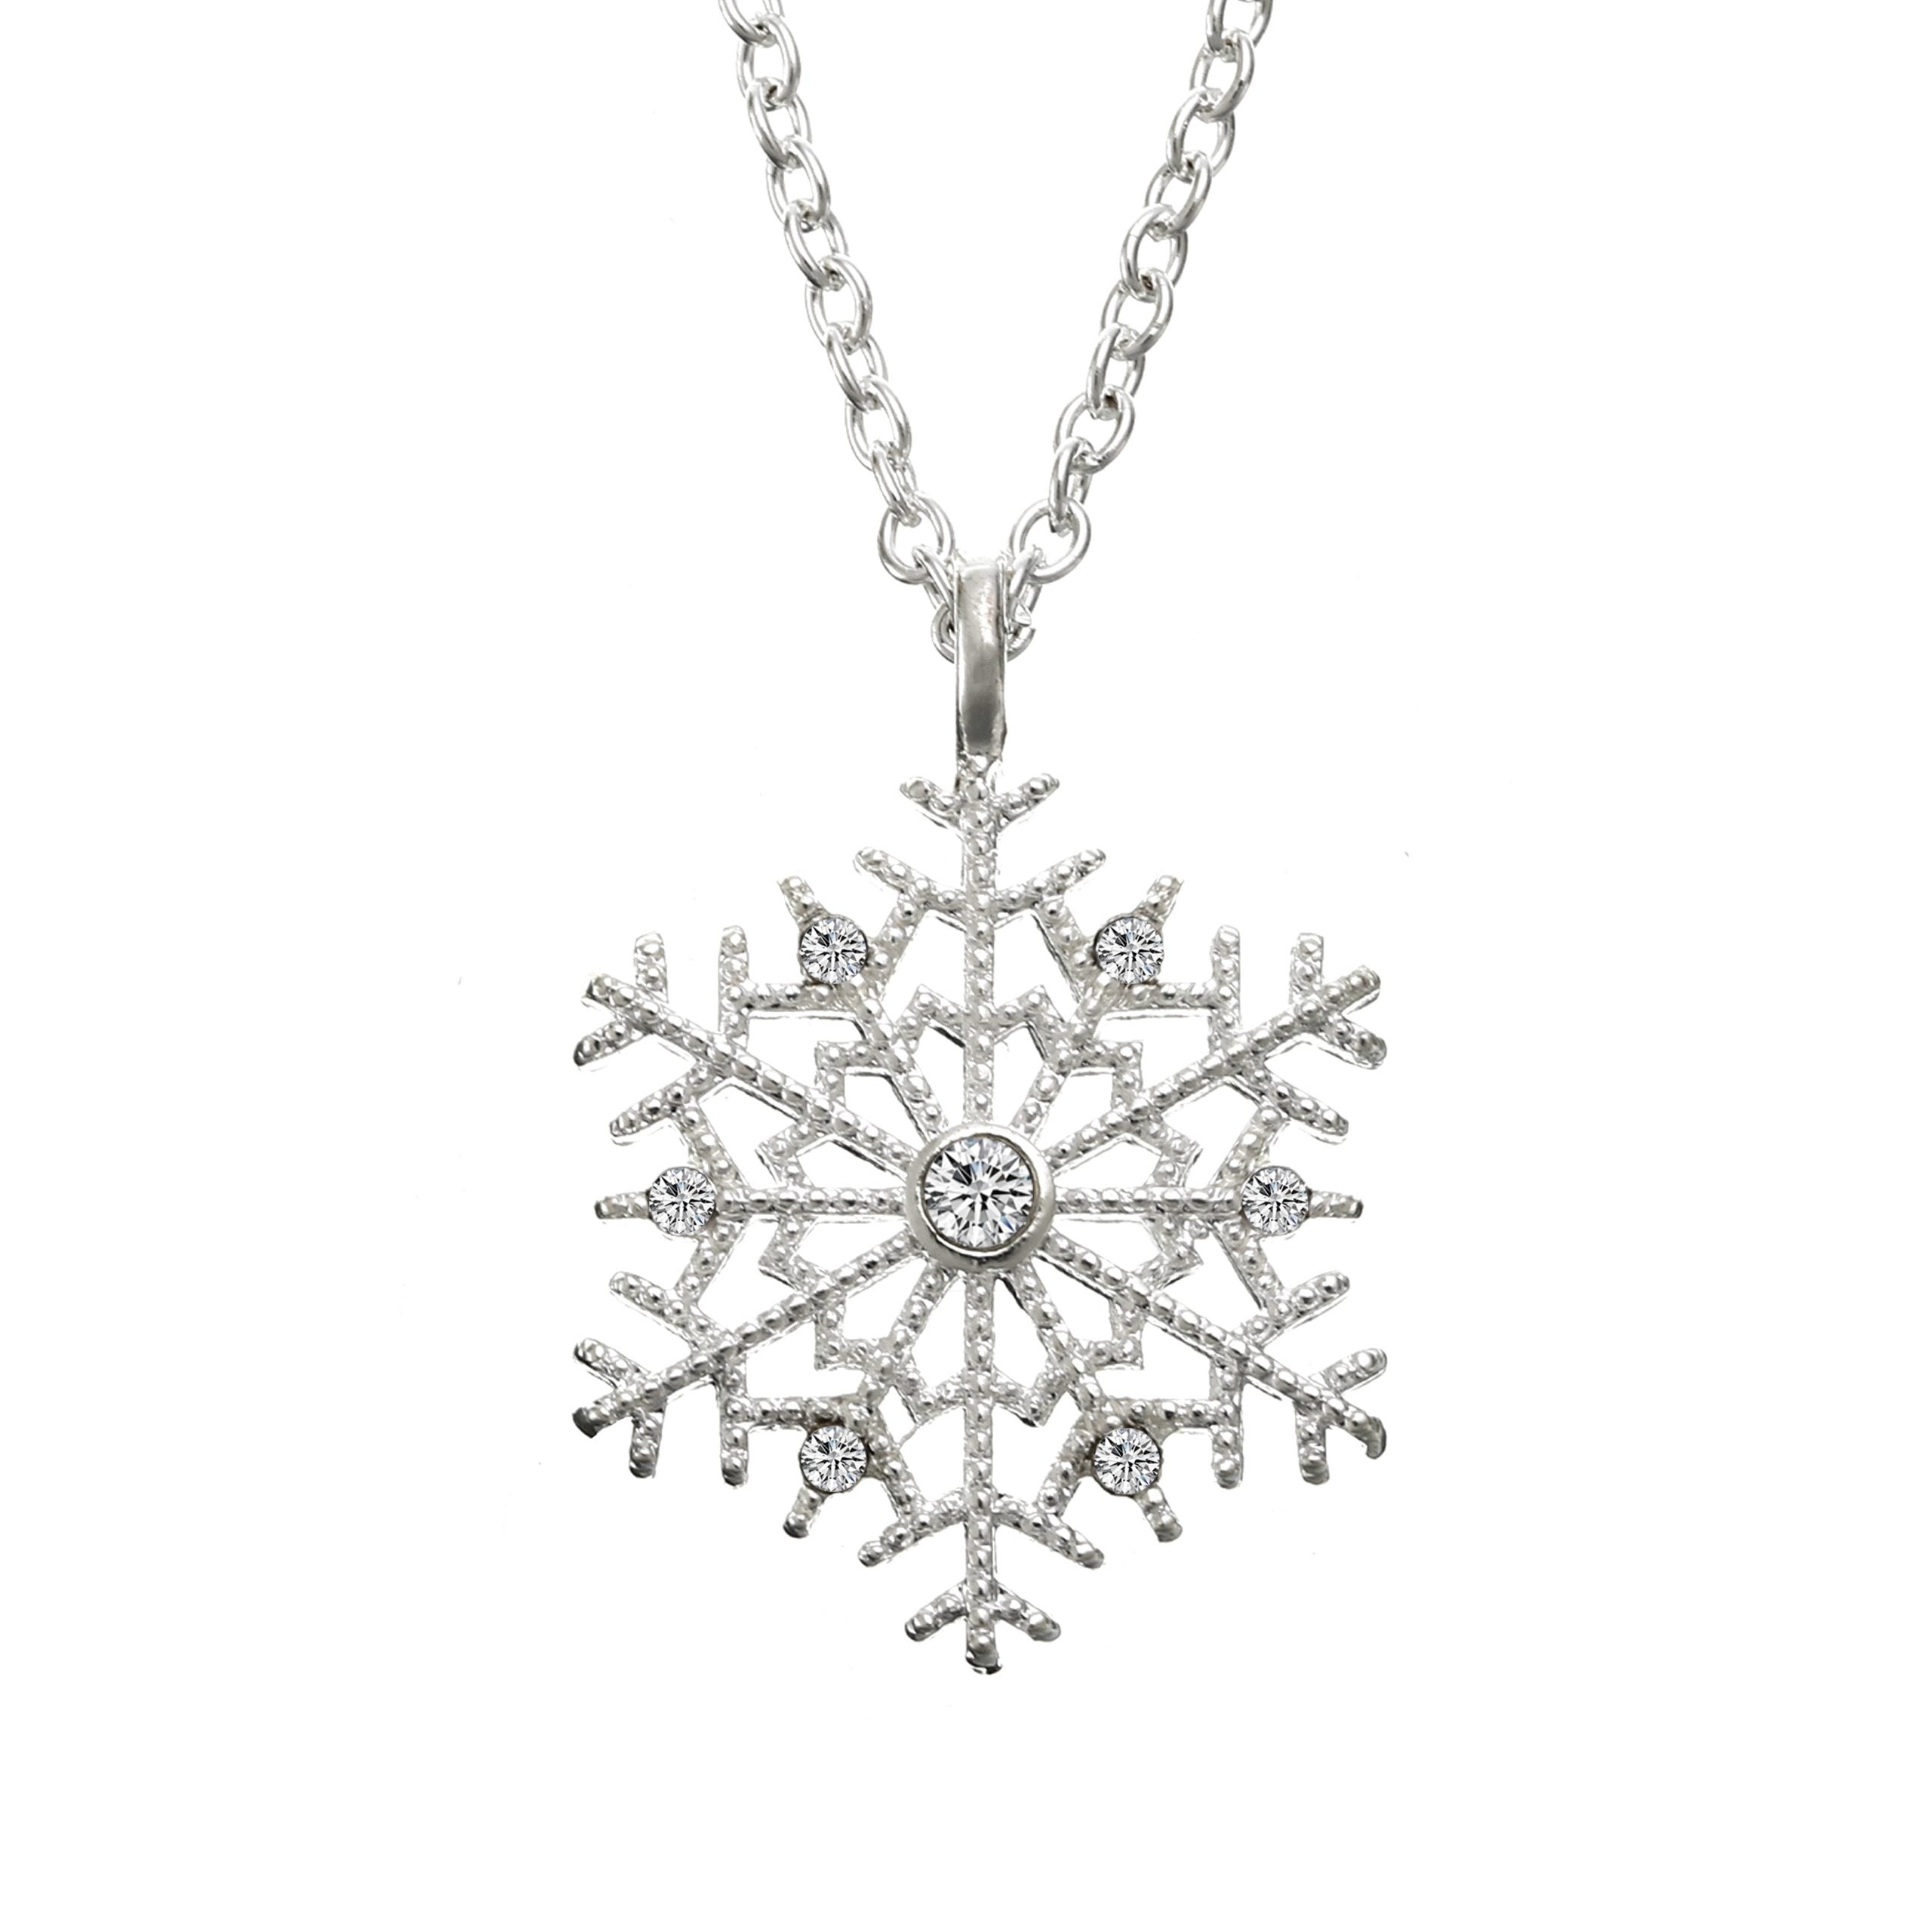 Luxury Crystal Snowflake Pendants&Necklaces Fashion Silver Plated Chain Necklace Gift For Womenintothea-intothea